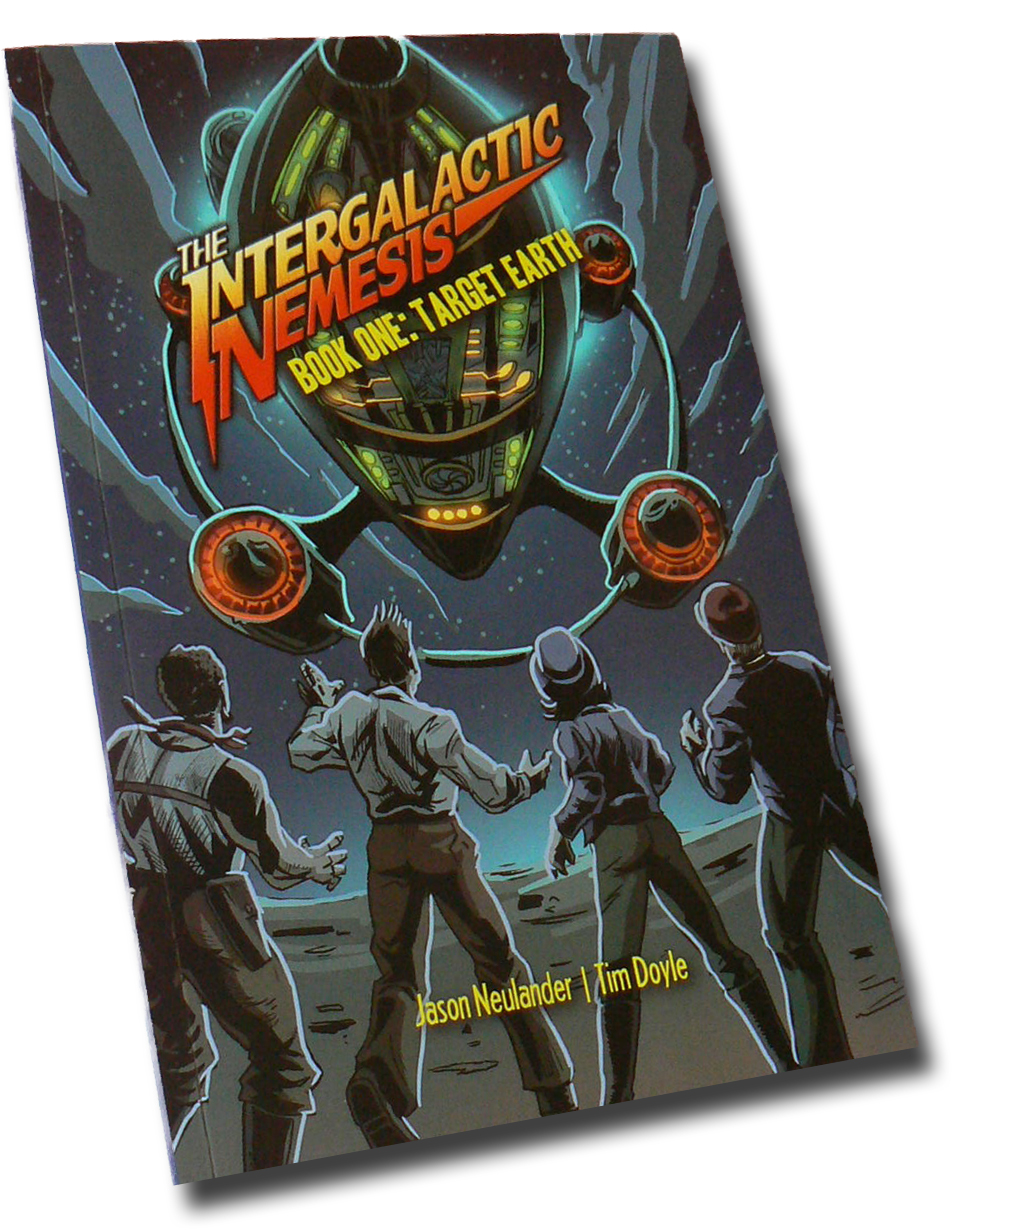 The Intergalactic Nemesis Graphic Novel /TPB now available!